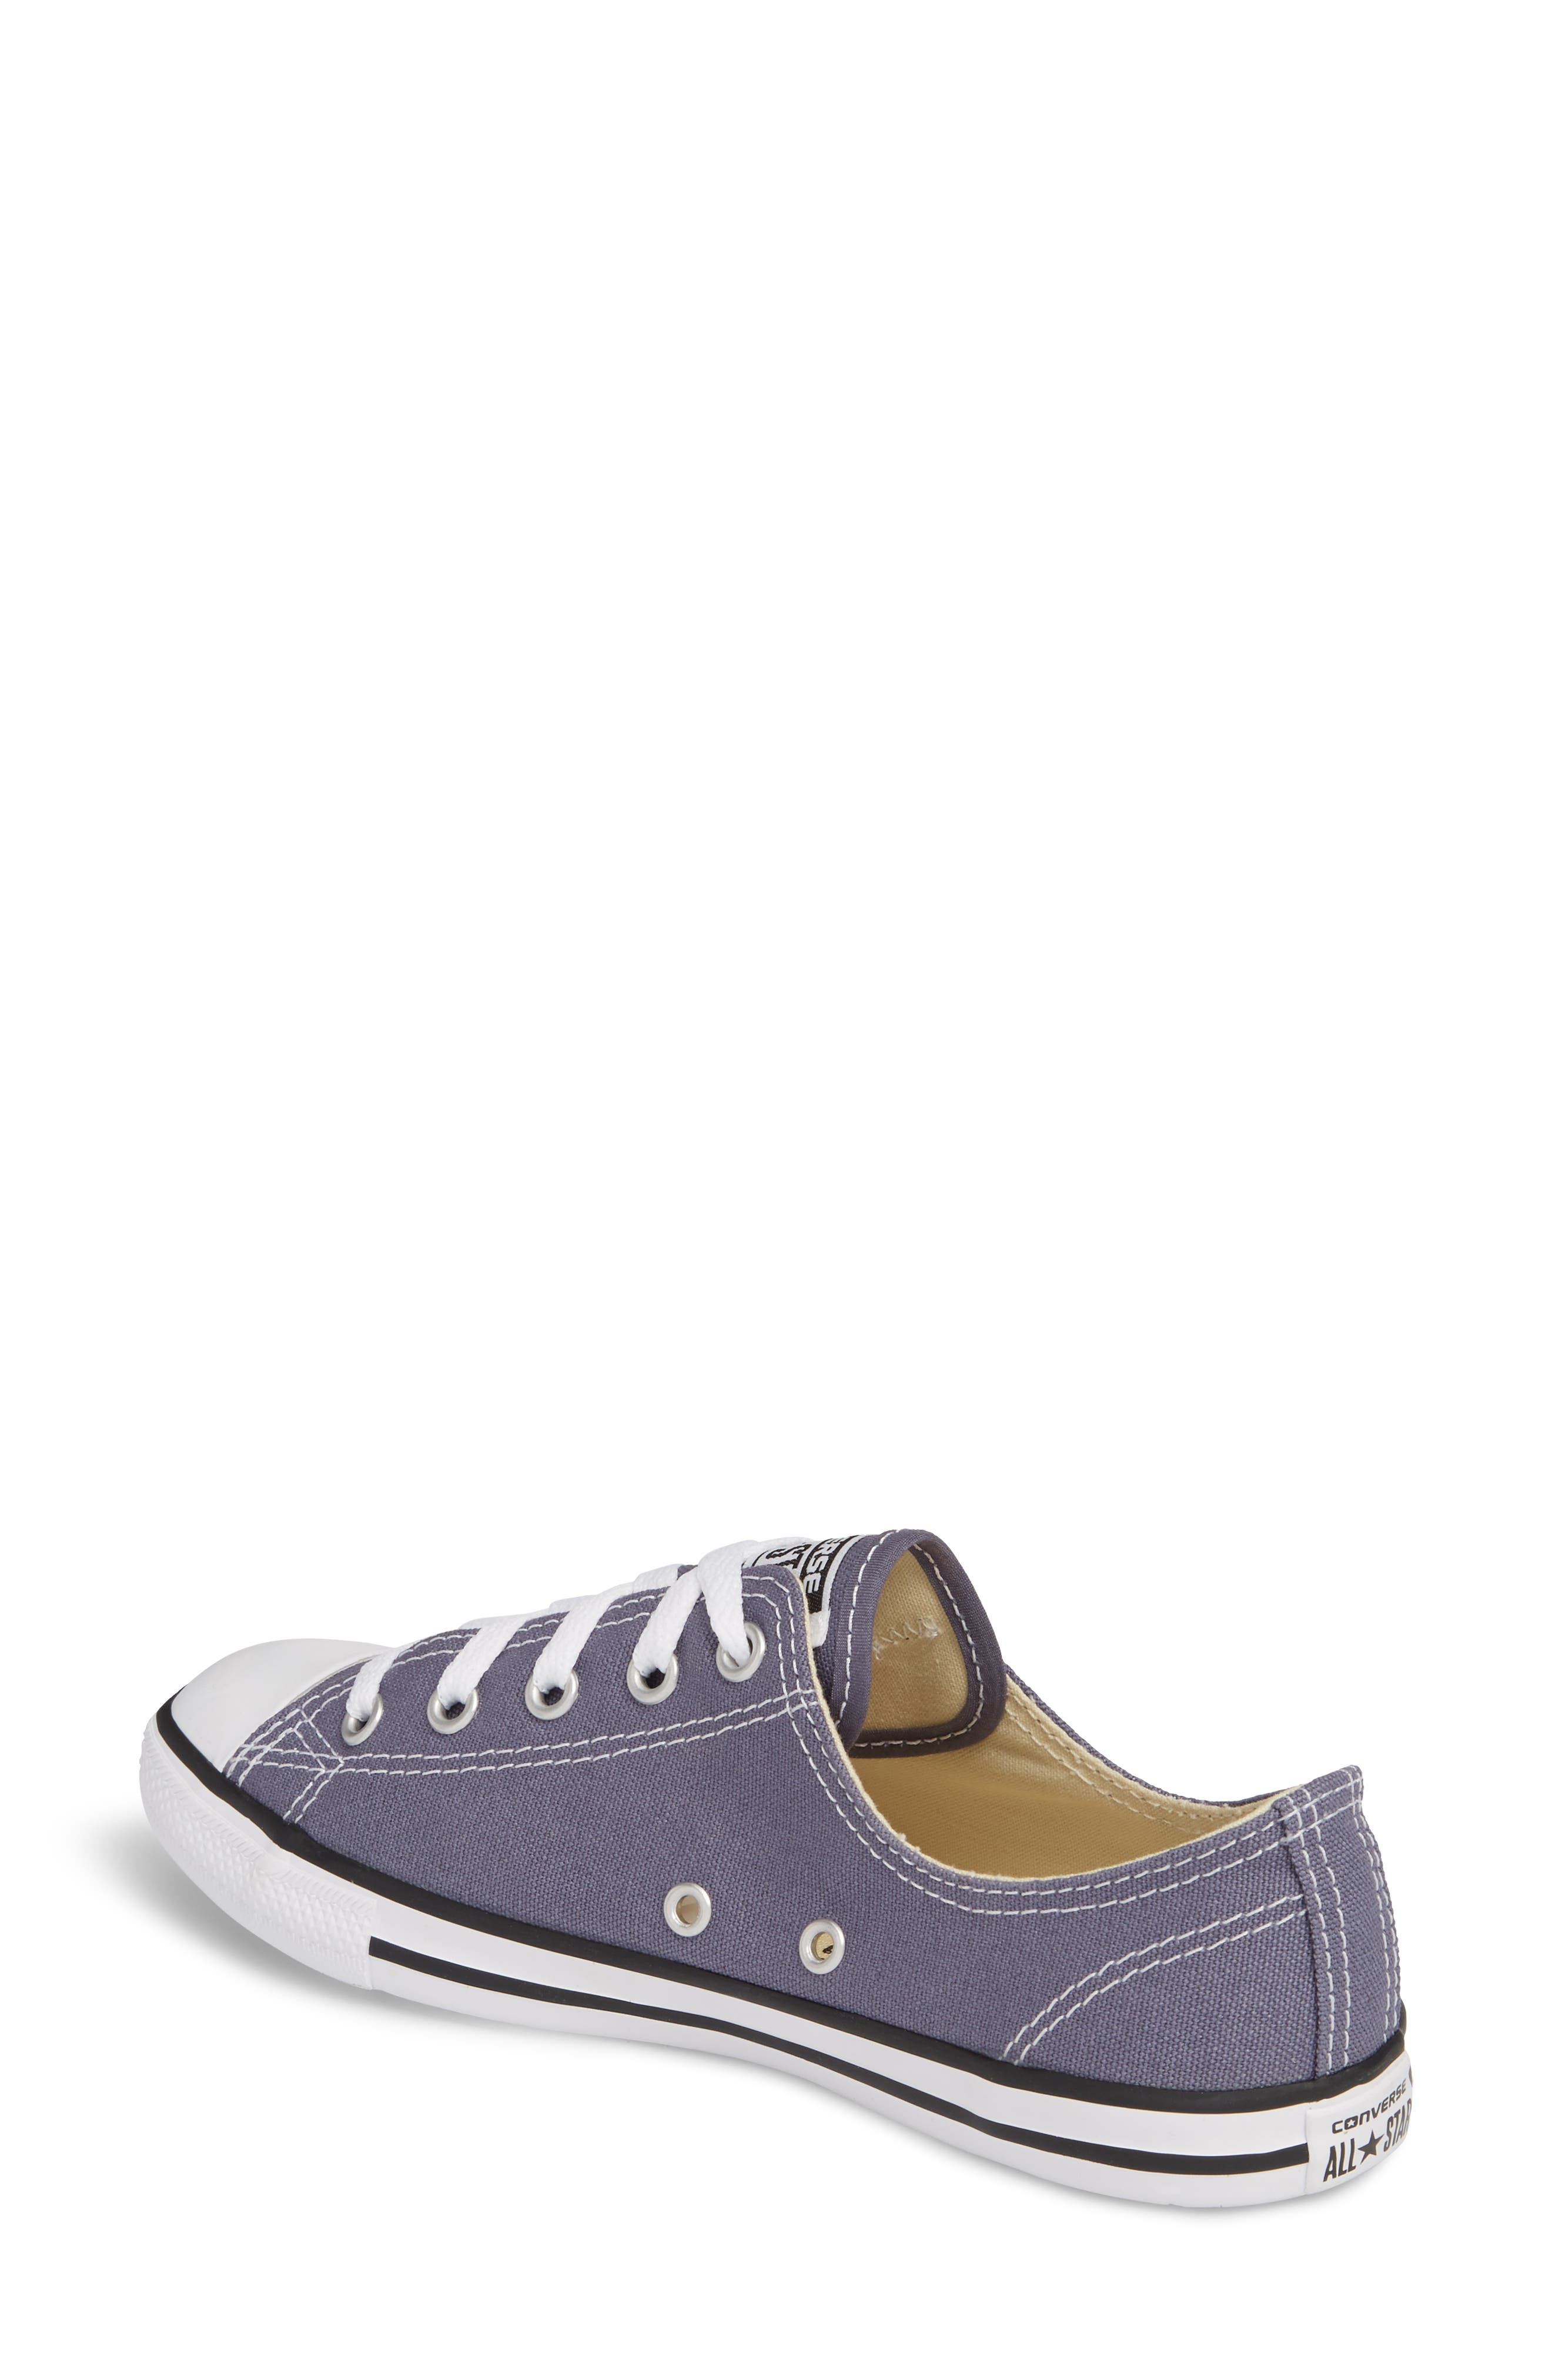 Chuck Taylor<sup>®</sup> All Star<sup>®</sup> Dainty Ox Low Top Sneaker,                             Alternate thumbnail 2, color,                             023